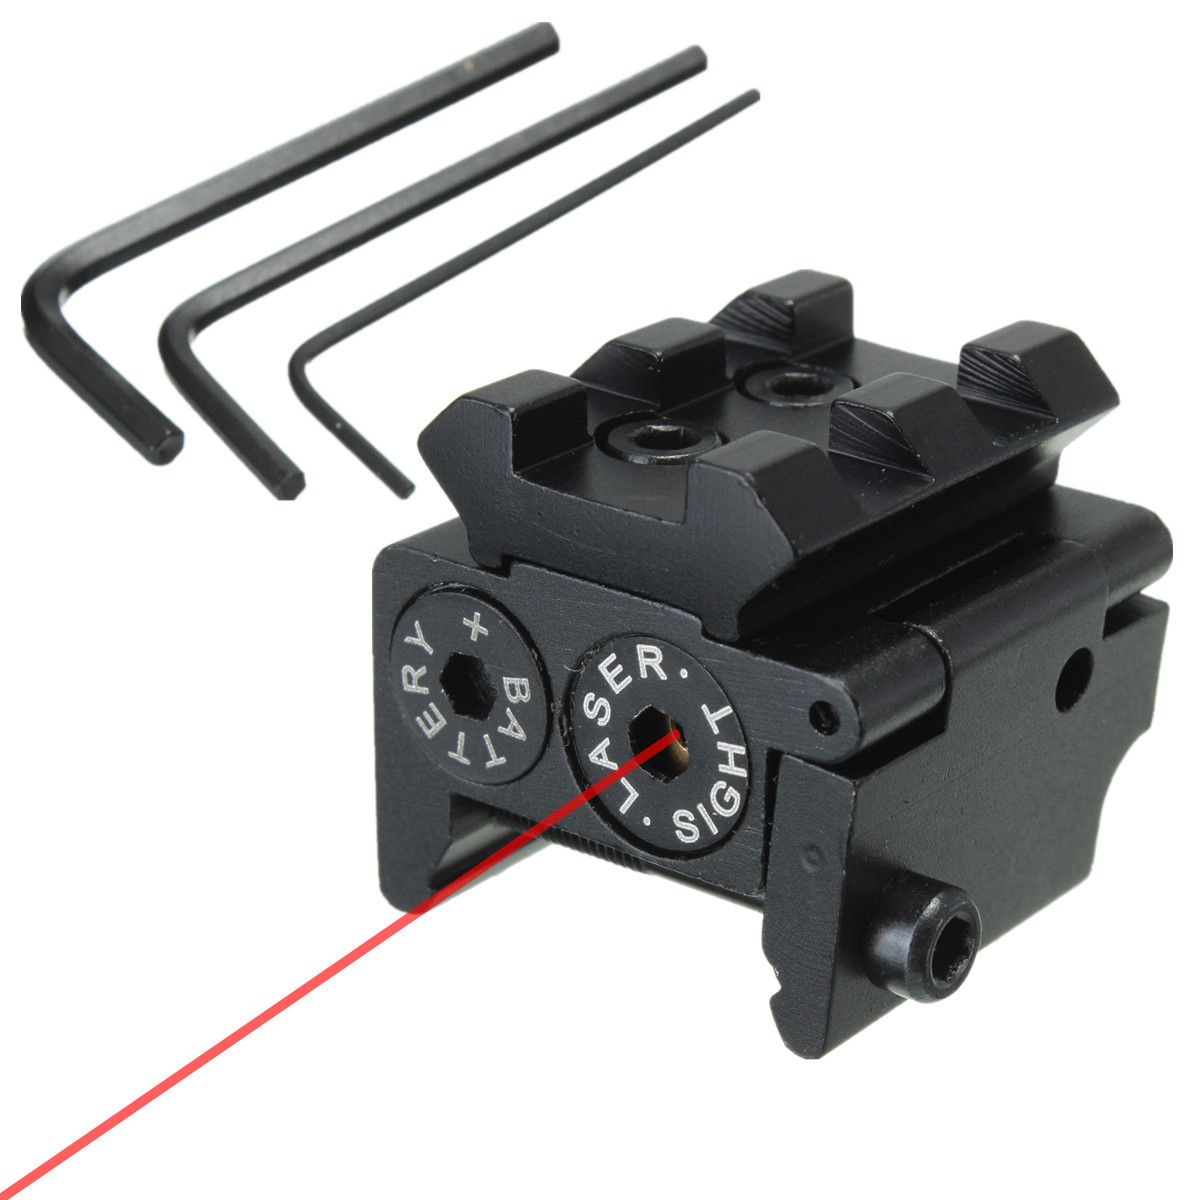 Mini Compact Tactical Red Dot Laser Bore Sight Scope With 20mm Picatinny Rail Mount boresighter scope alignment device rifles pistols handguns firearms bore sight kit